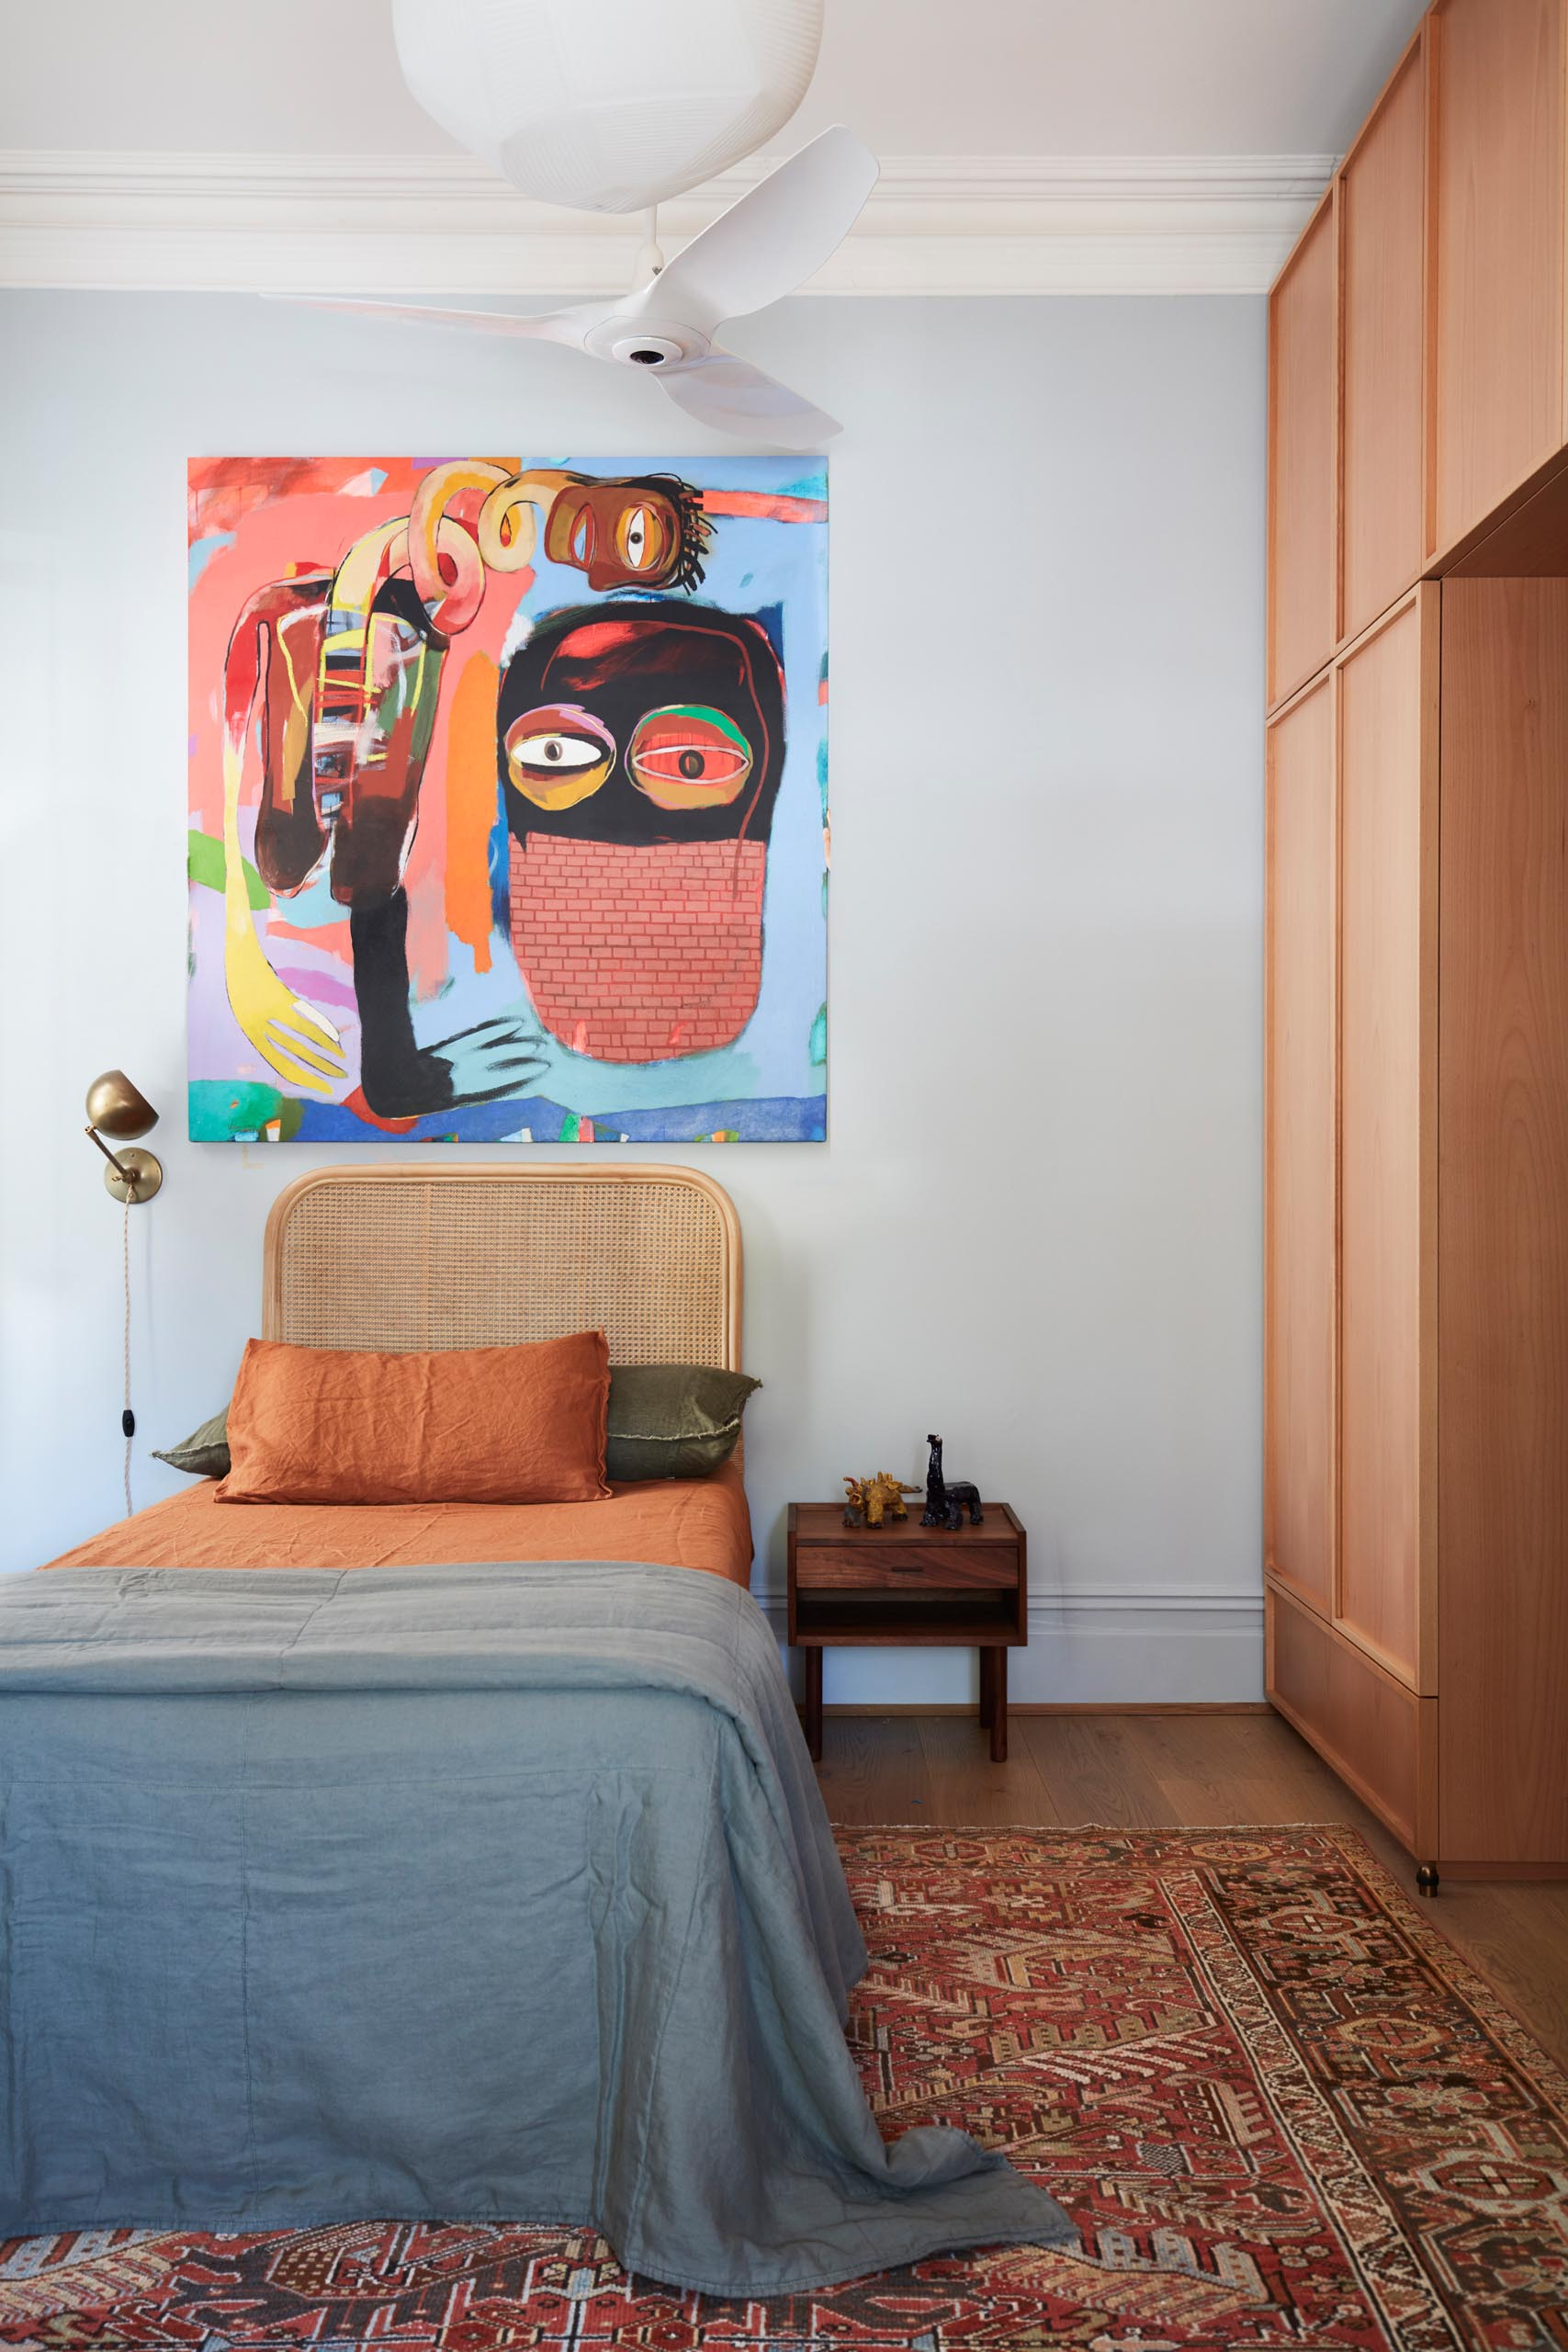 A bedroom with a bold and colorful art piece above the bed.